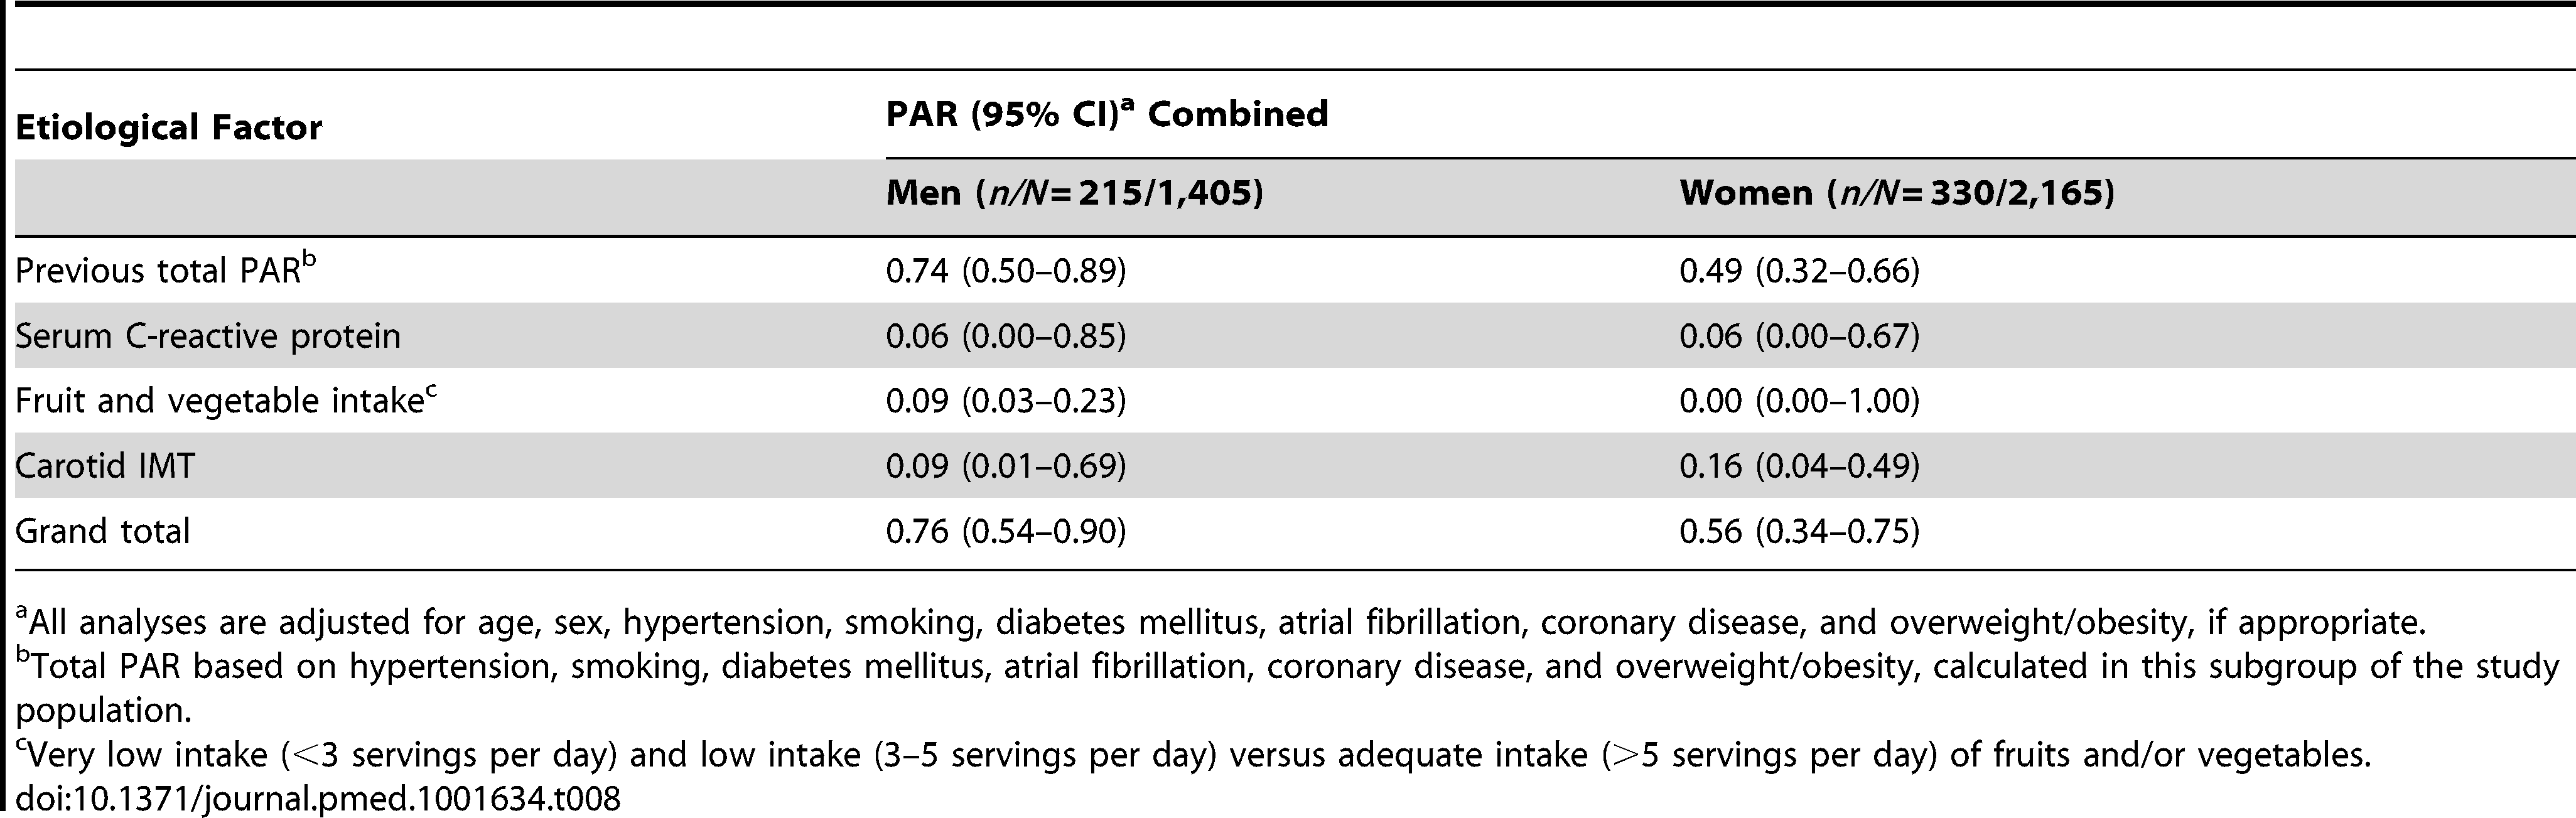 Population attributable risks of presumed etiological factors for which data were available only for subgroups, for any stroke: men and women.